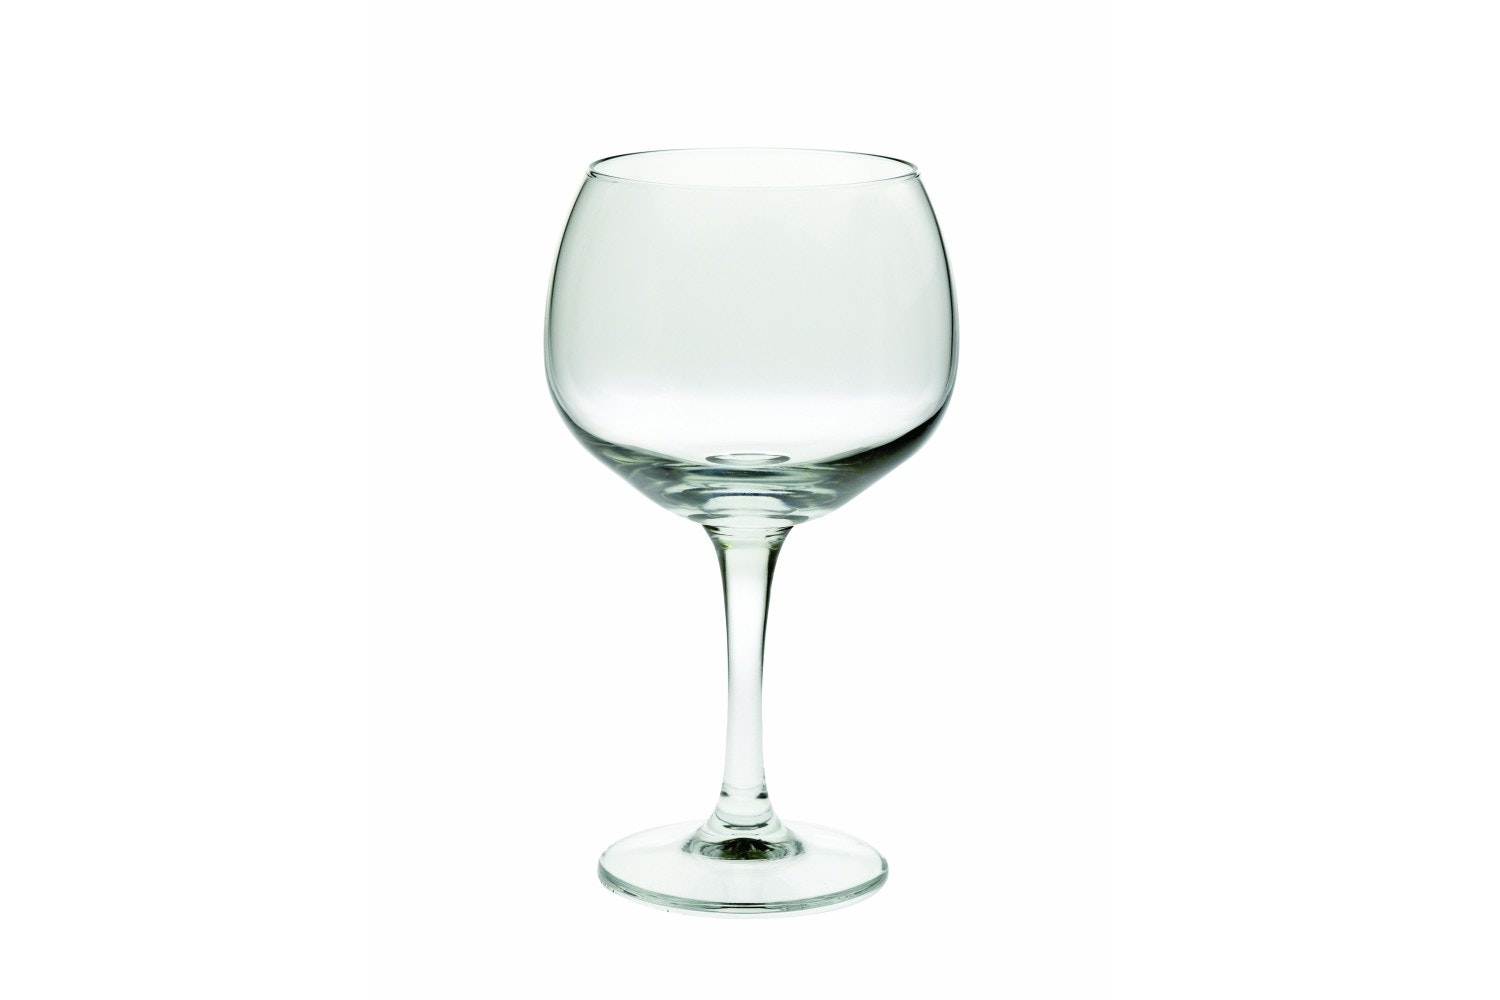 Tipperary Crystal | Connoisseur Set Of 2 Gin Glasses In A Gift Box